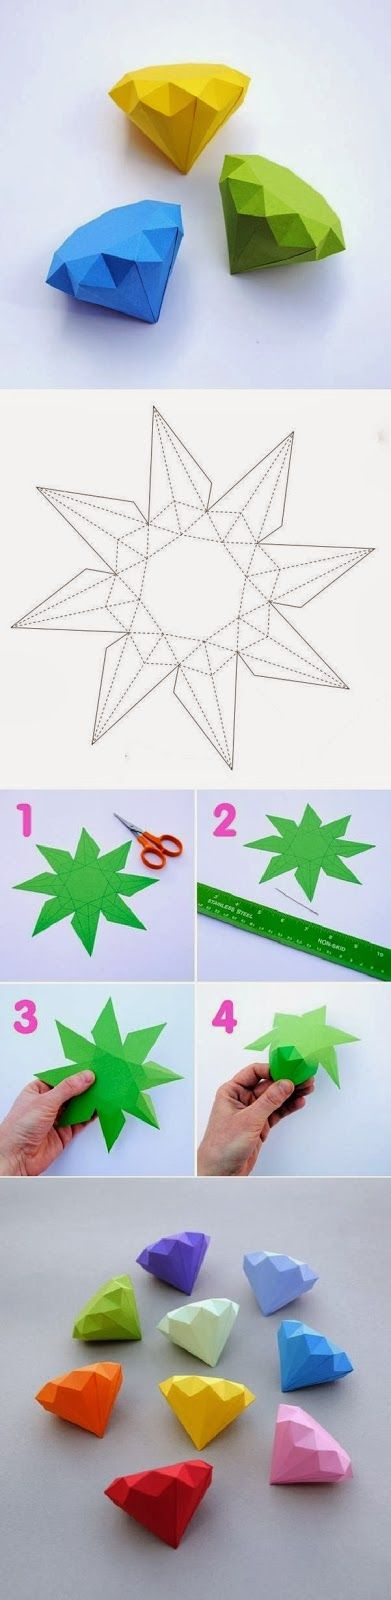 DIY: Diamants de papier | Tutoriaux __ gVirt_NP_NN_NNPS <__ bricolage et artisanat